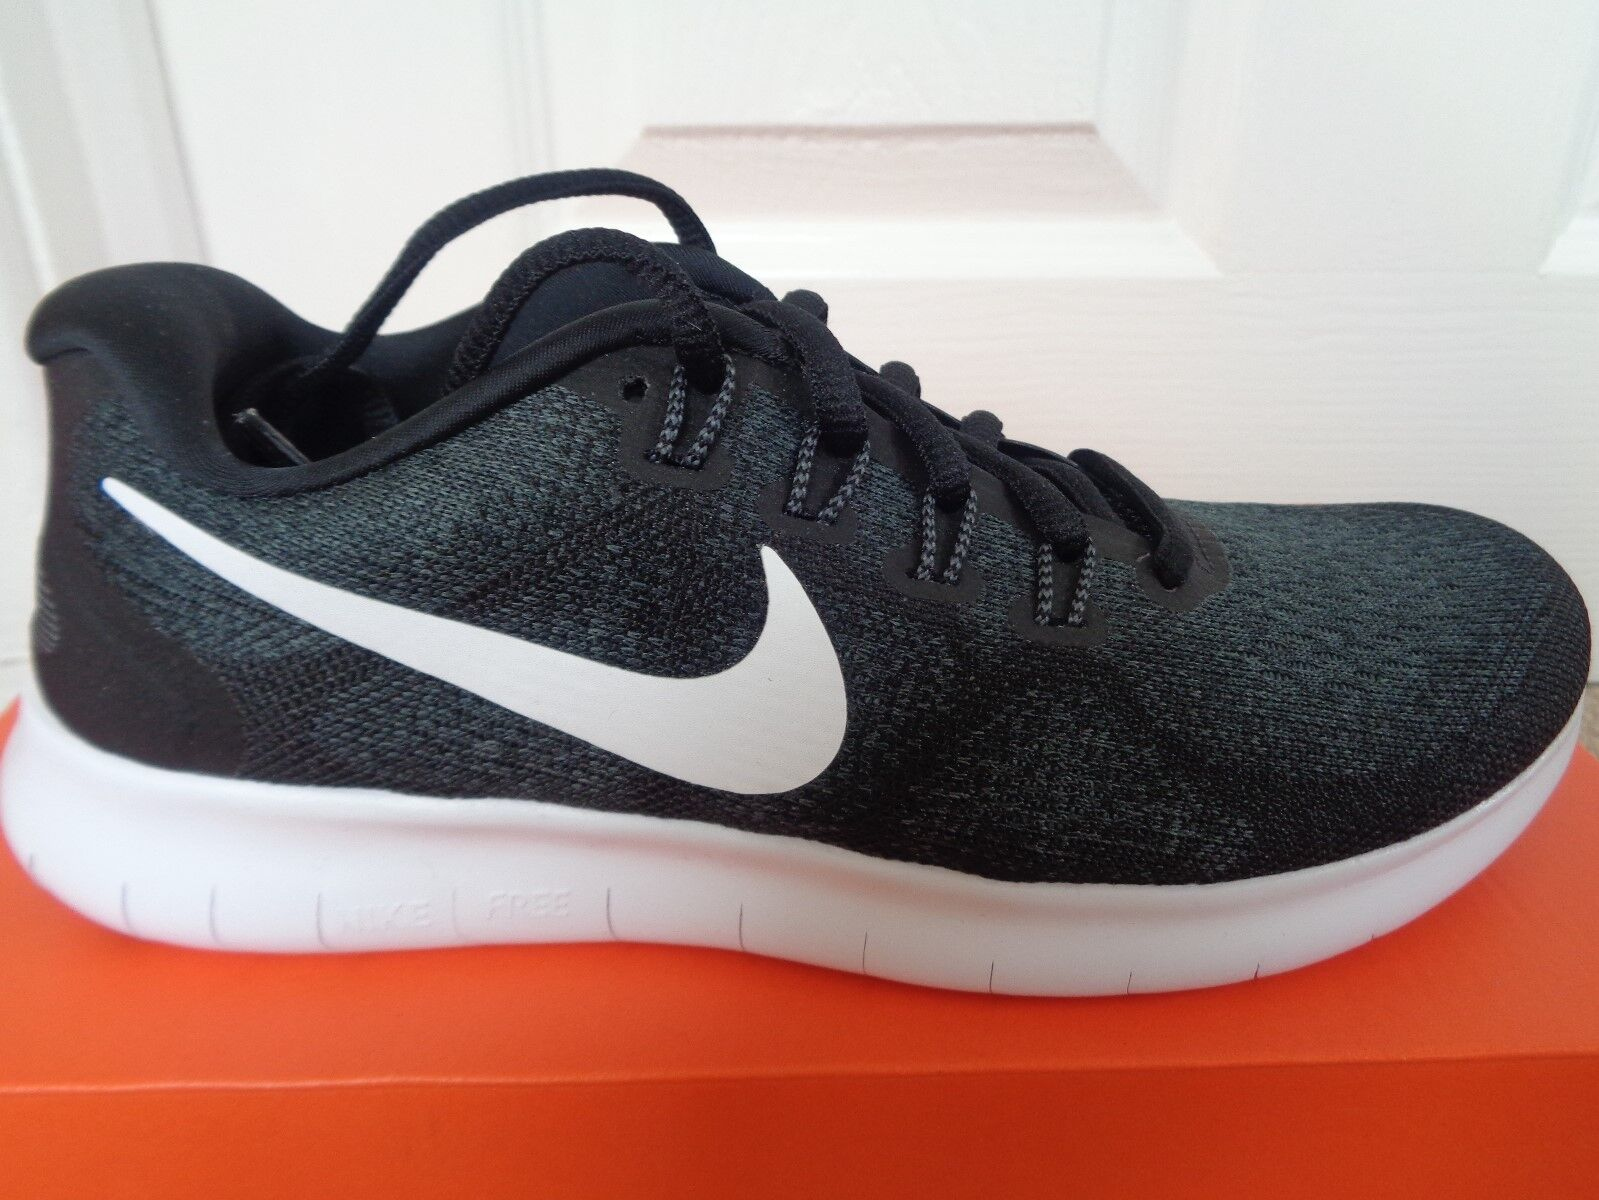 check out 9926e 095d4 Nike Free RN 2018 Femme trainers chaussures 880840 001 001 001 uk 7754b3